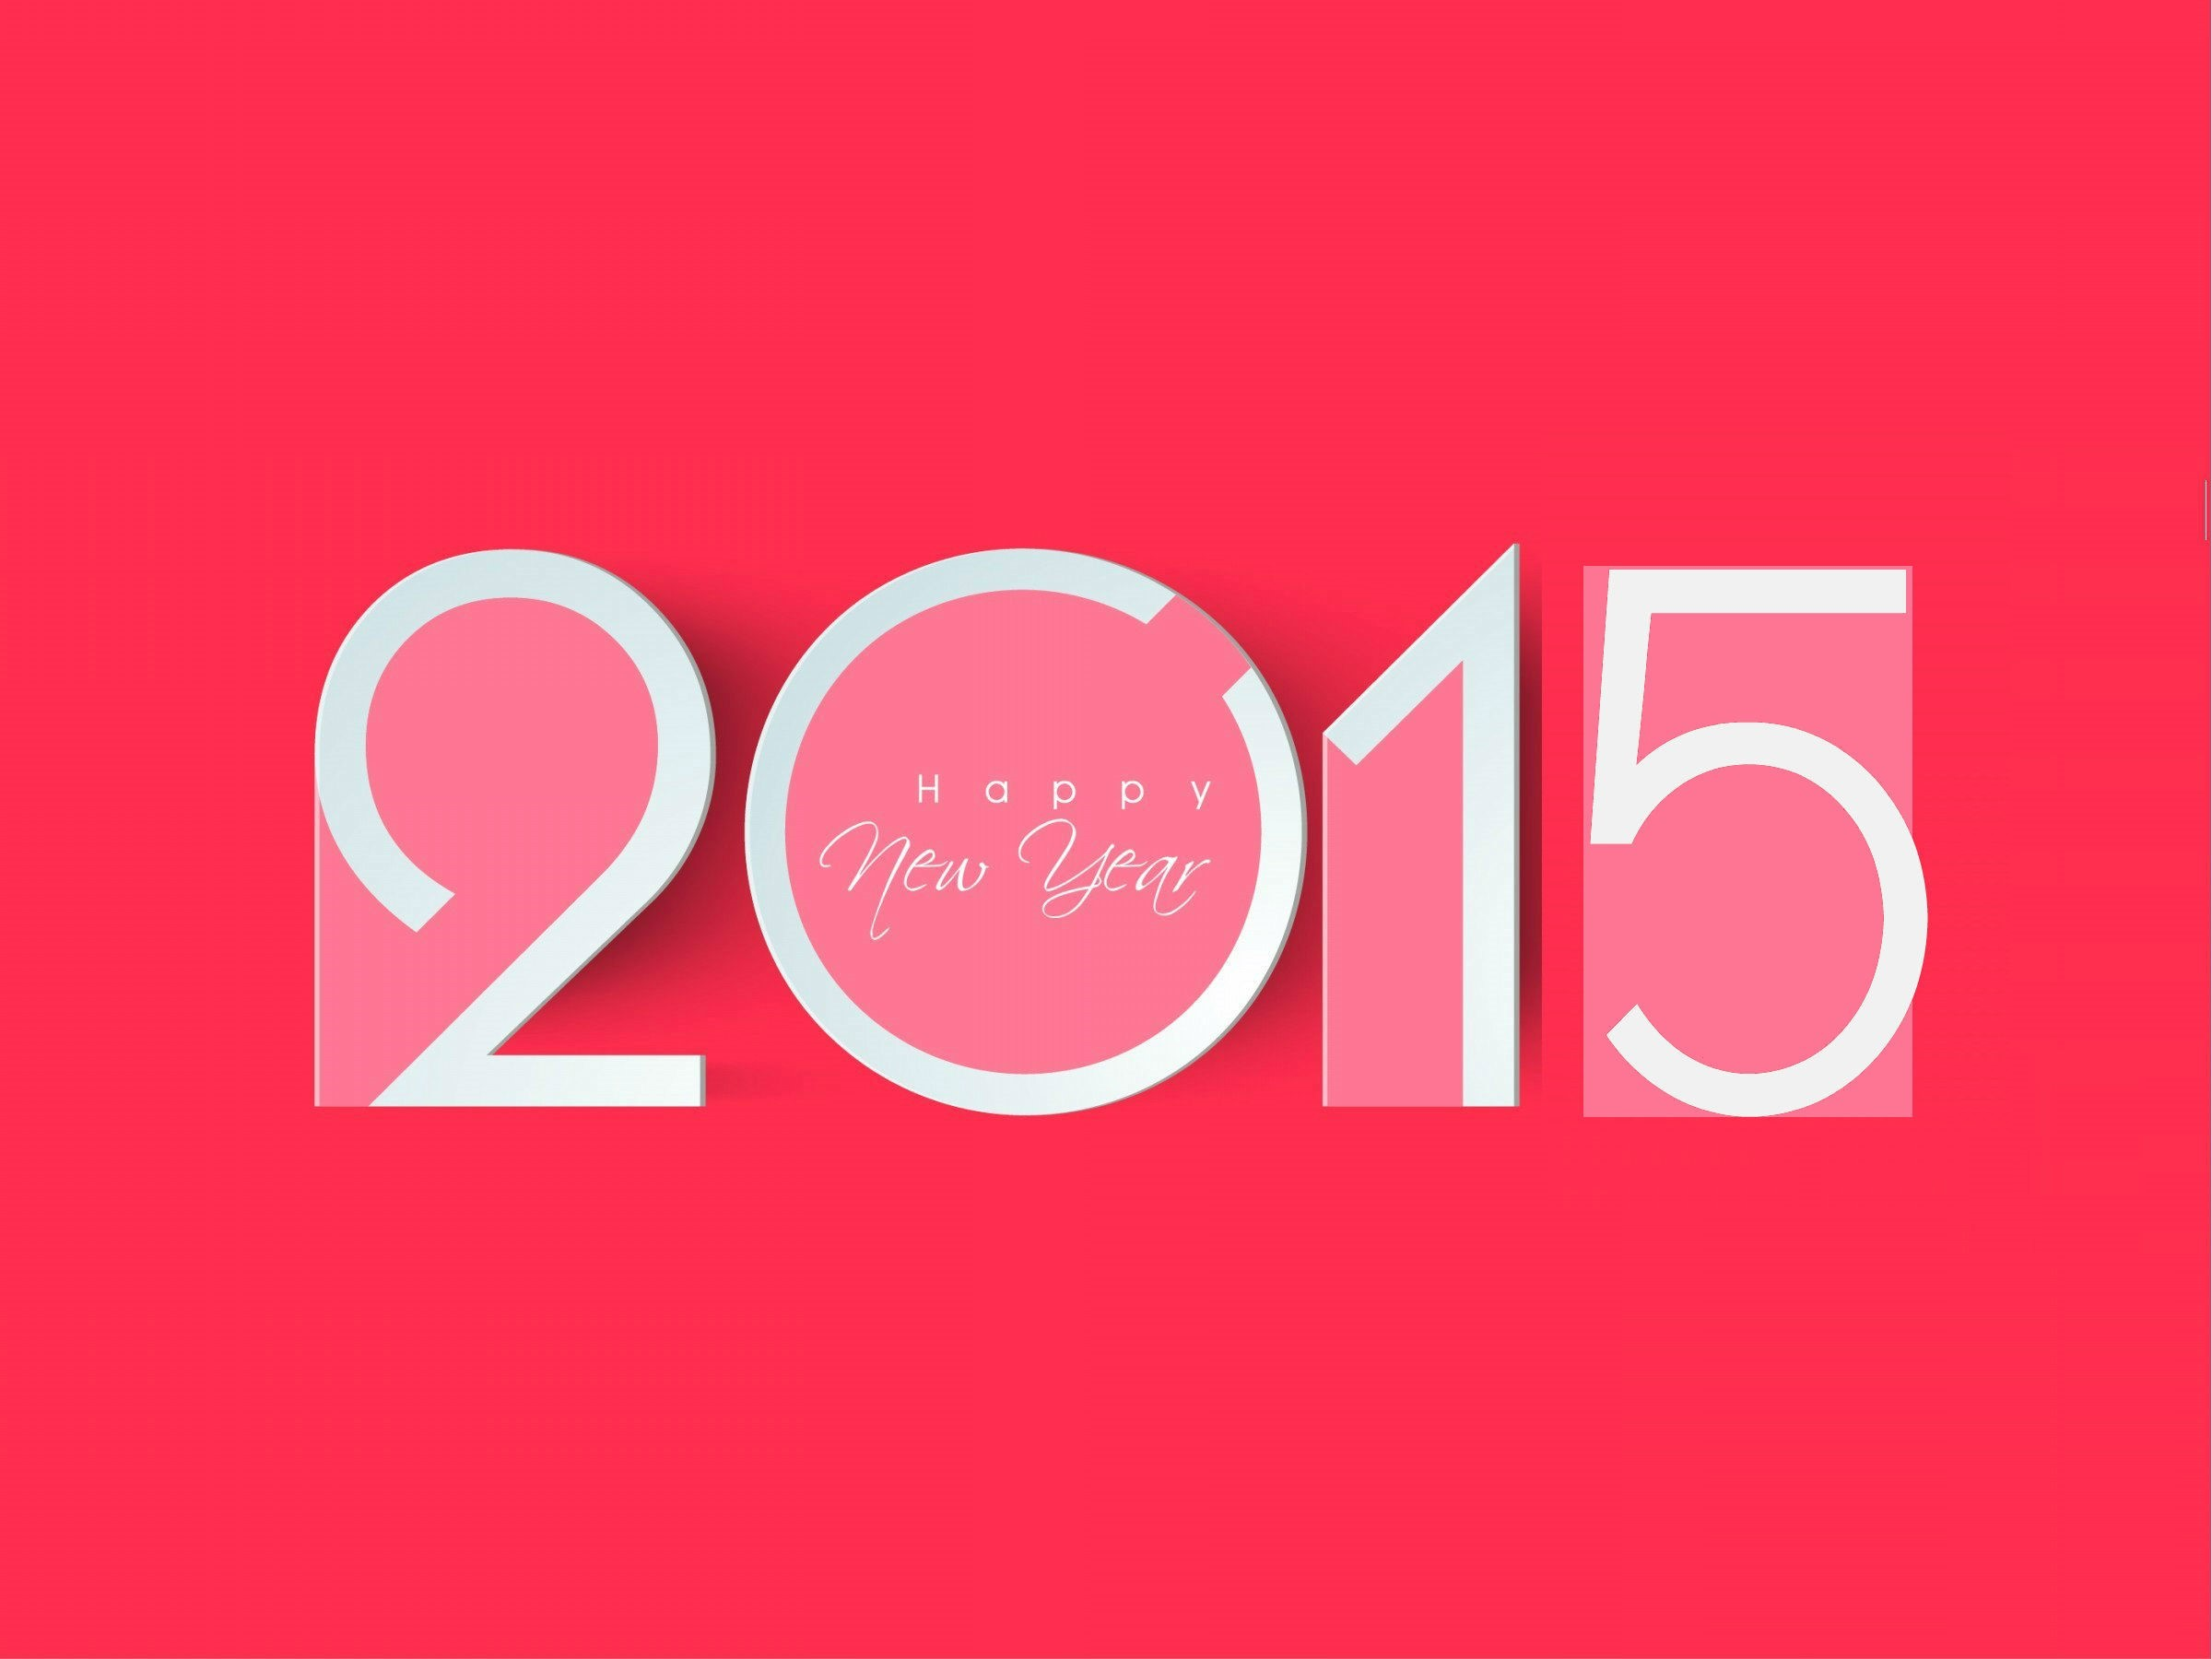 Popular Happy New Year 2015 in Pink Color Background HD Wallpaper 2400x1800